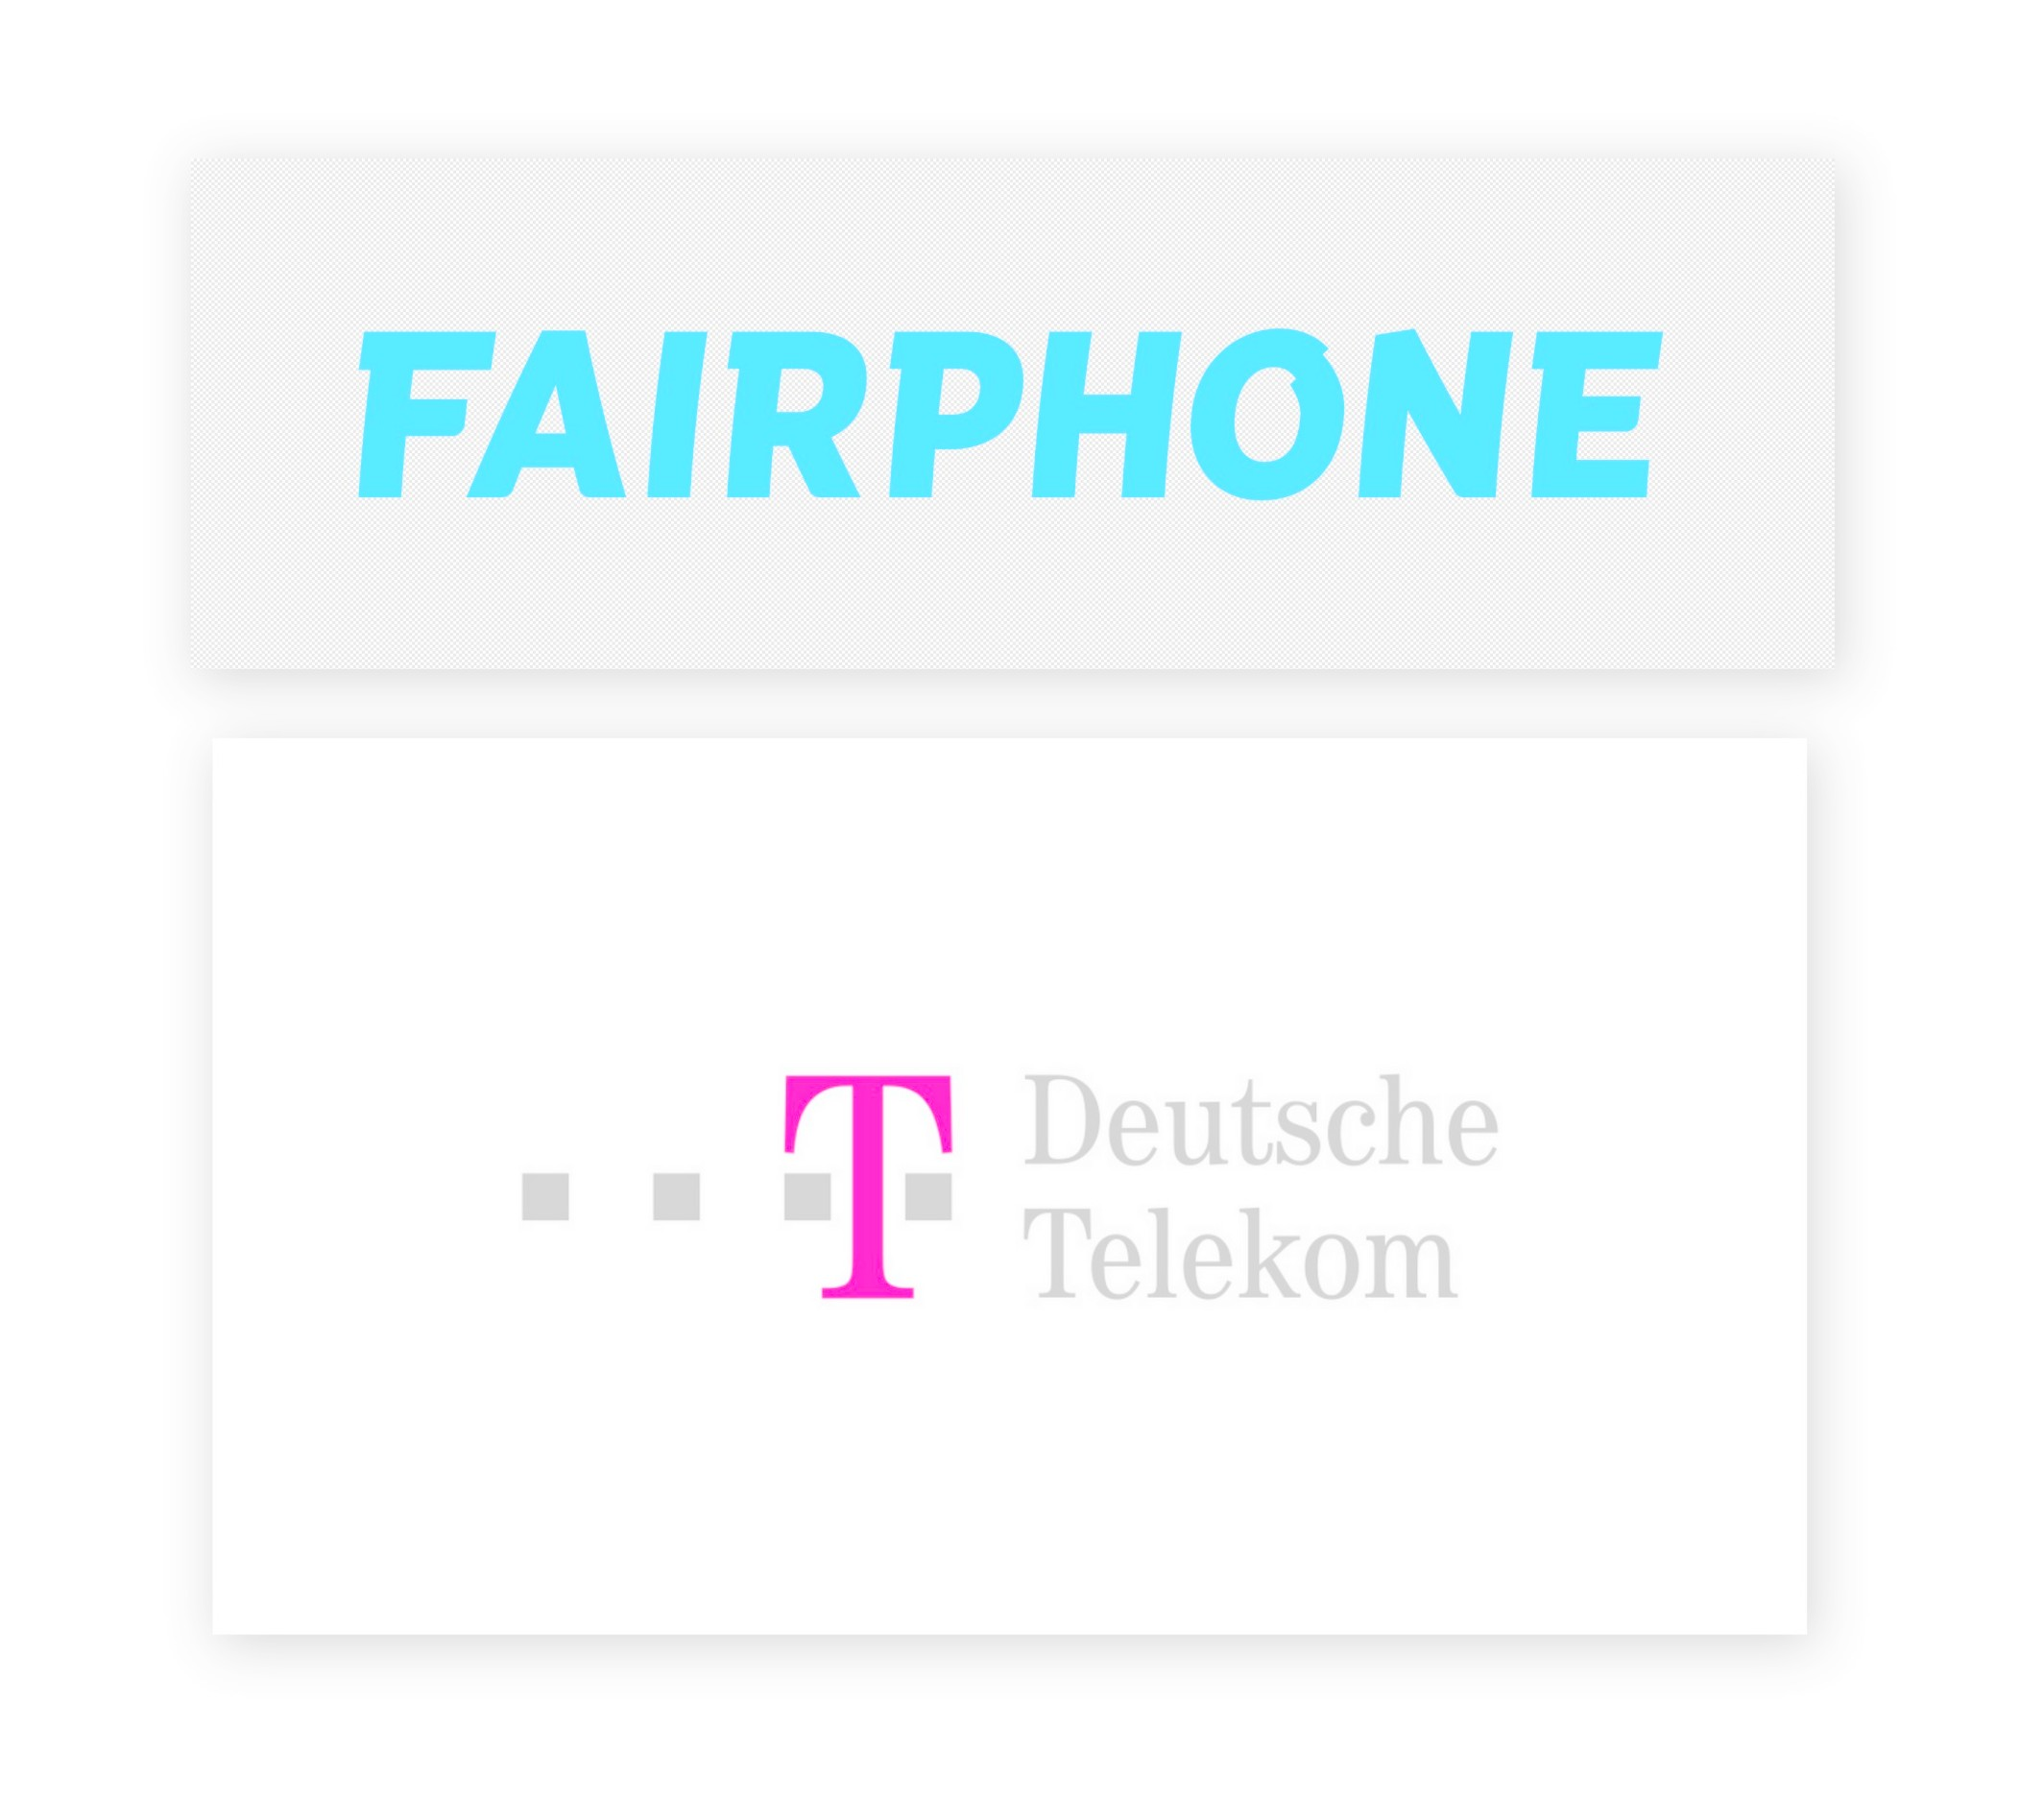 Fairphone & Deutsche Telekom